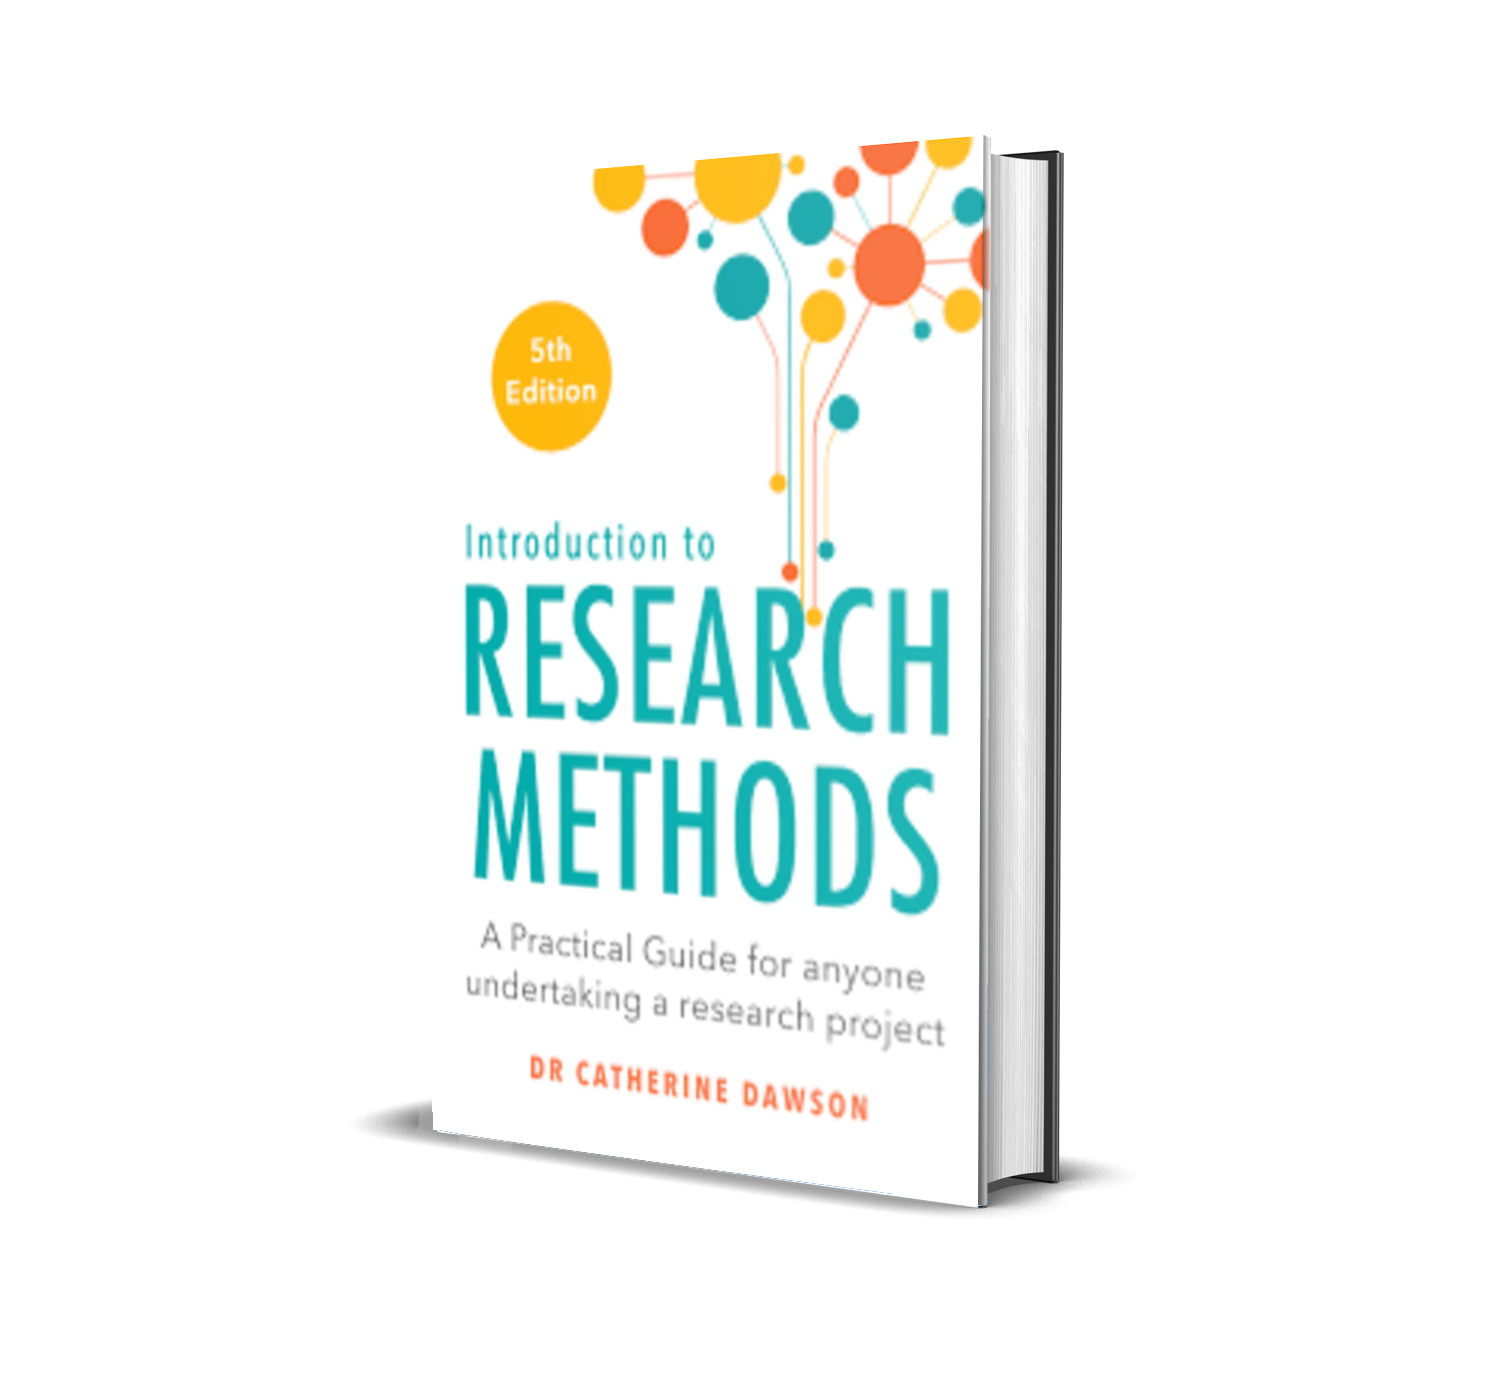 Introduction to Research Methods: A Practical Guide for Anyone Undertaking a Research Project - Catherine, Dr. Dawson